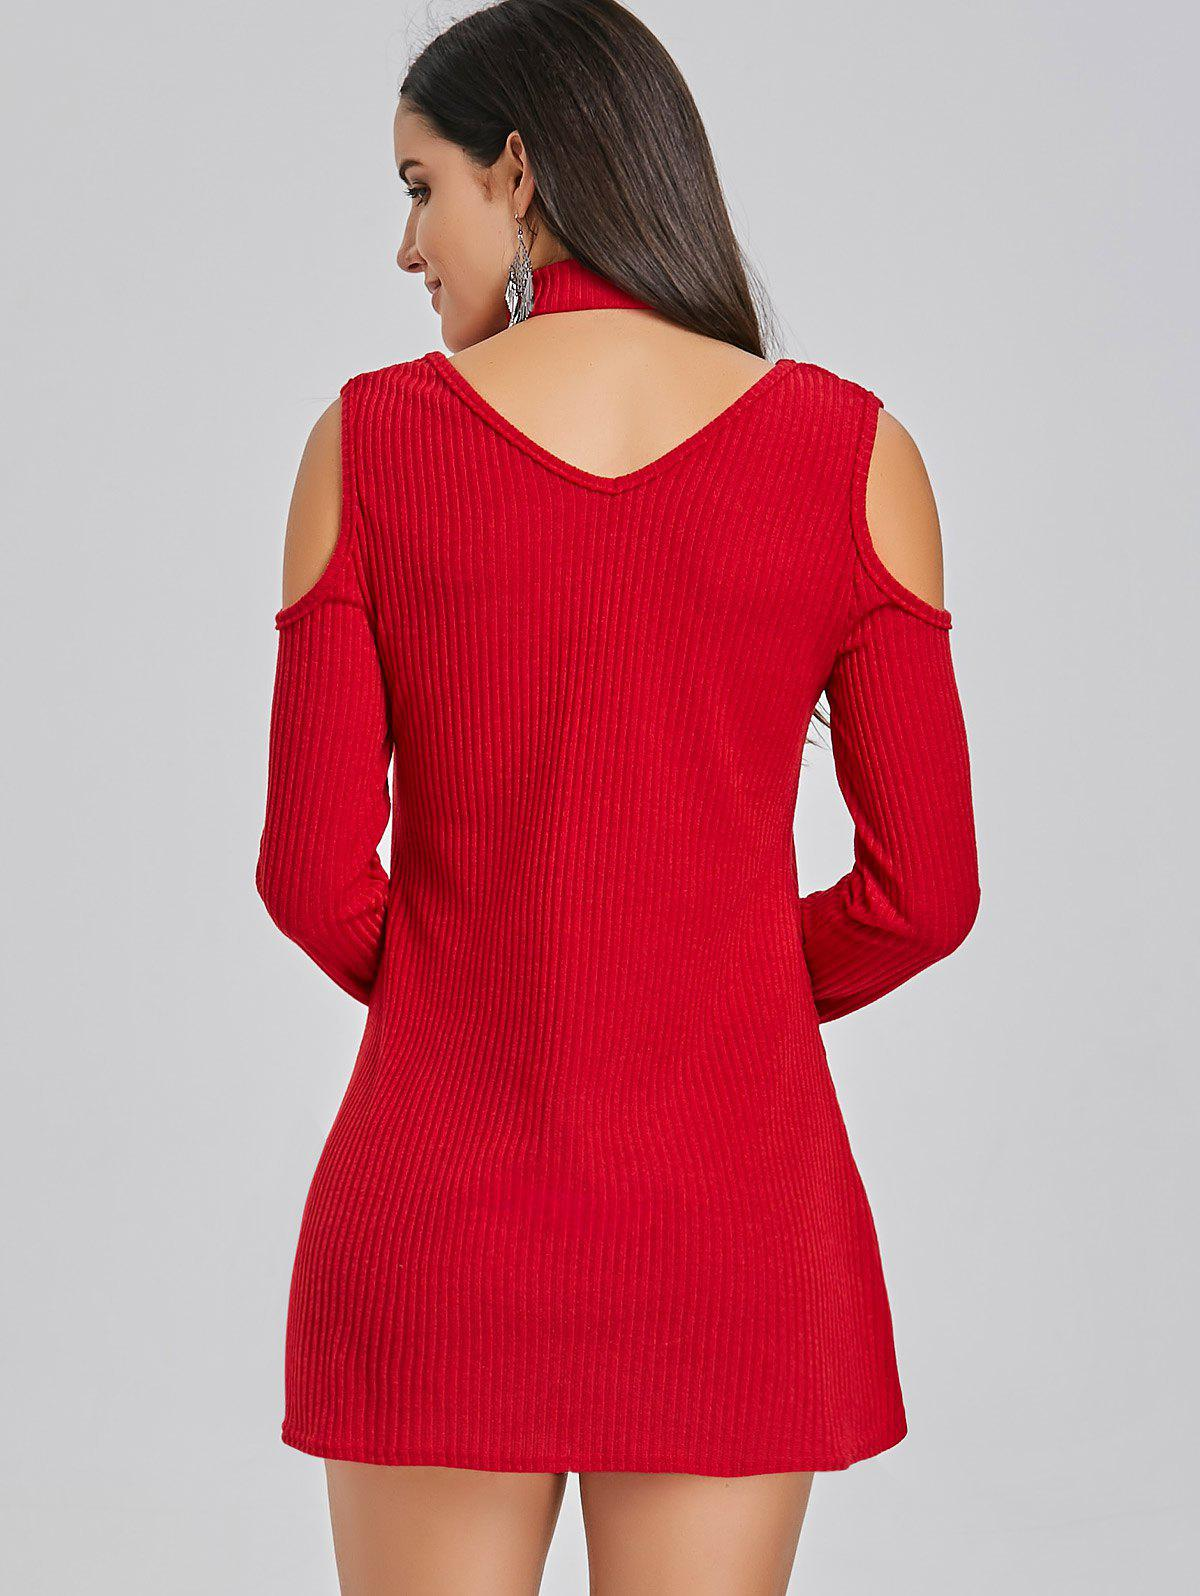 Mini Cold Shoulder Sweater Dress - RED M